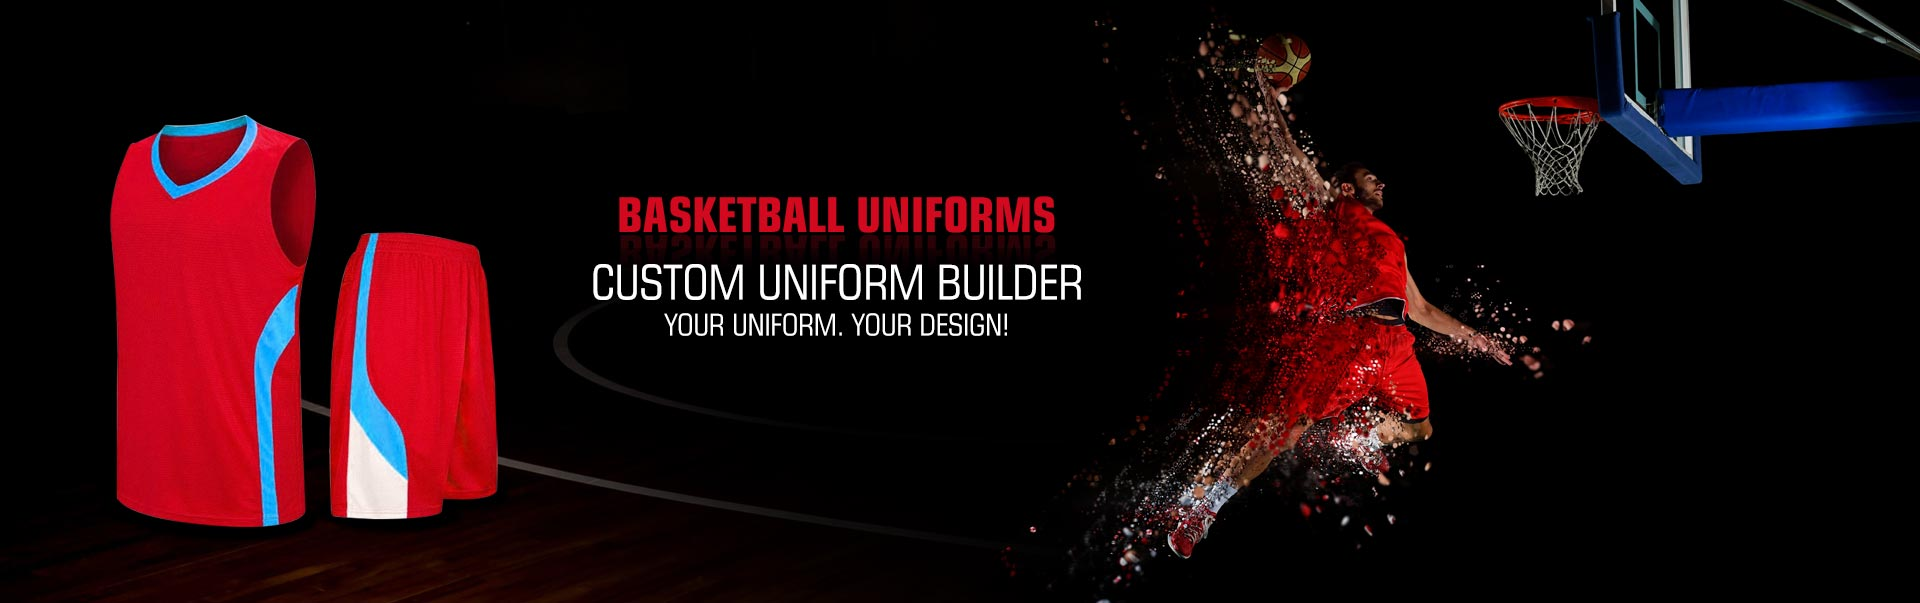 Basketball Uniforms Wholesaler, Suppliers in Saint John